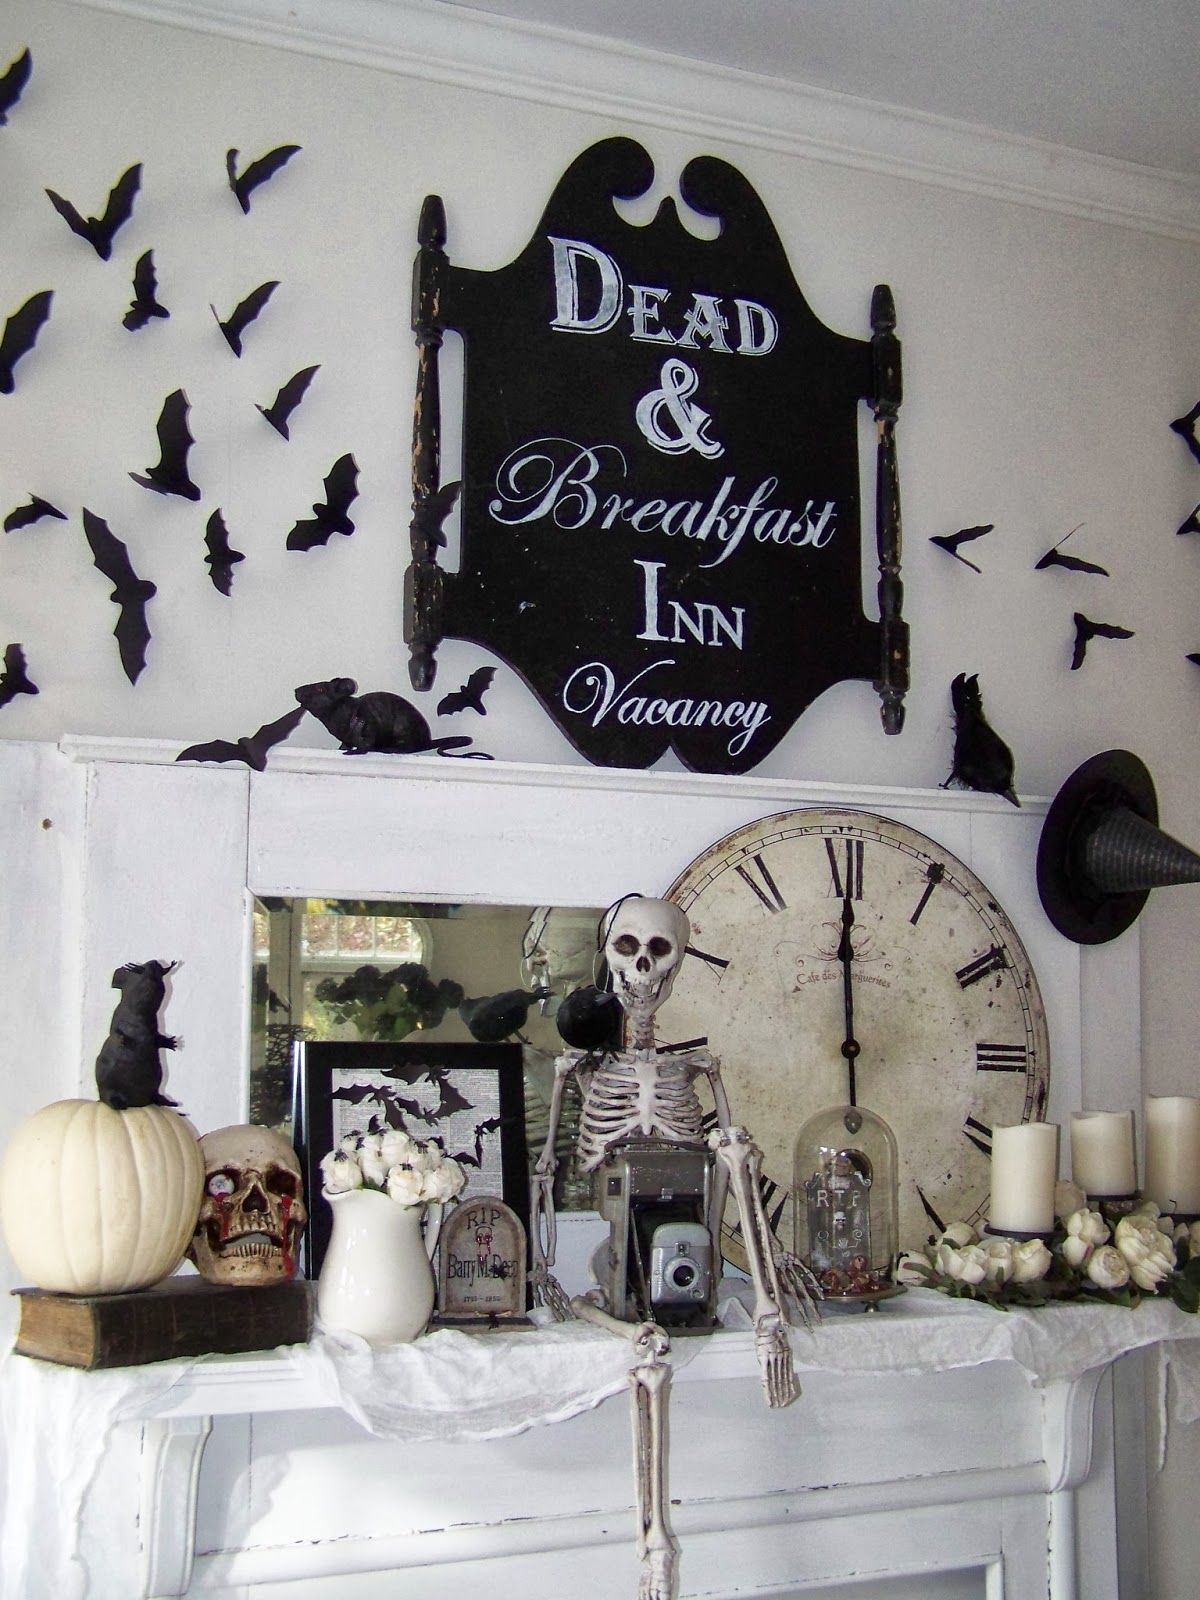 35 Absolutely Stunning Ways To Decorate Your Mantel For Fall And Halloween Easy Diy Halloween Decorations Halloween Mantel Decor Diy Halloween Home Decor